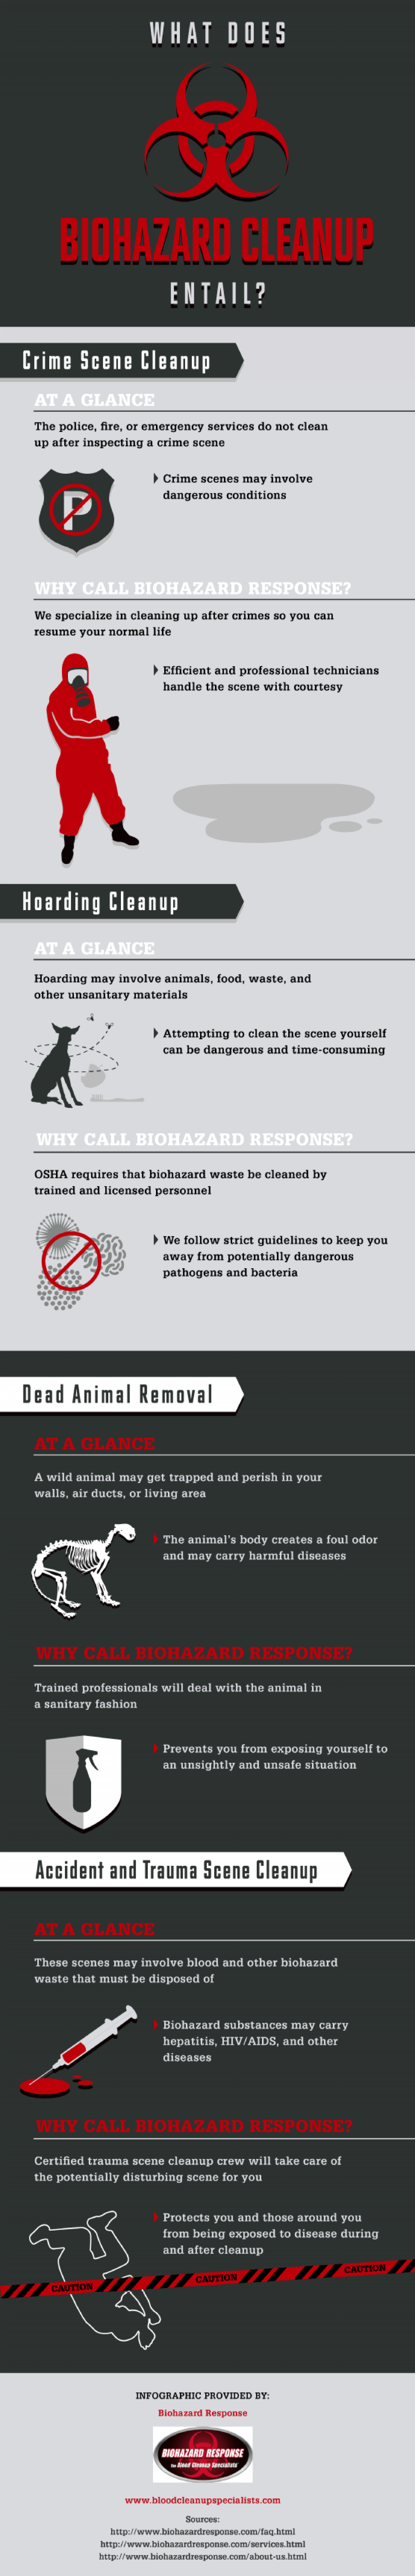 What Does Biohazard Cleanup Entail? Infographic